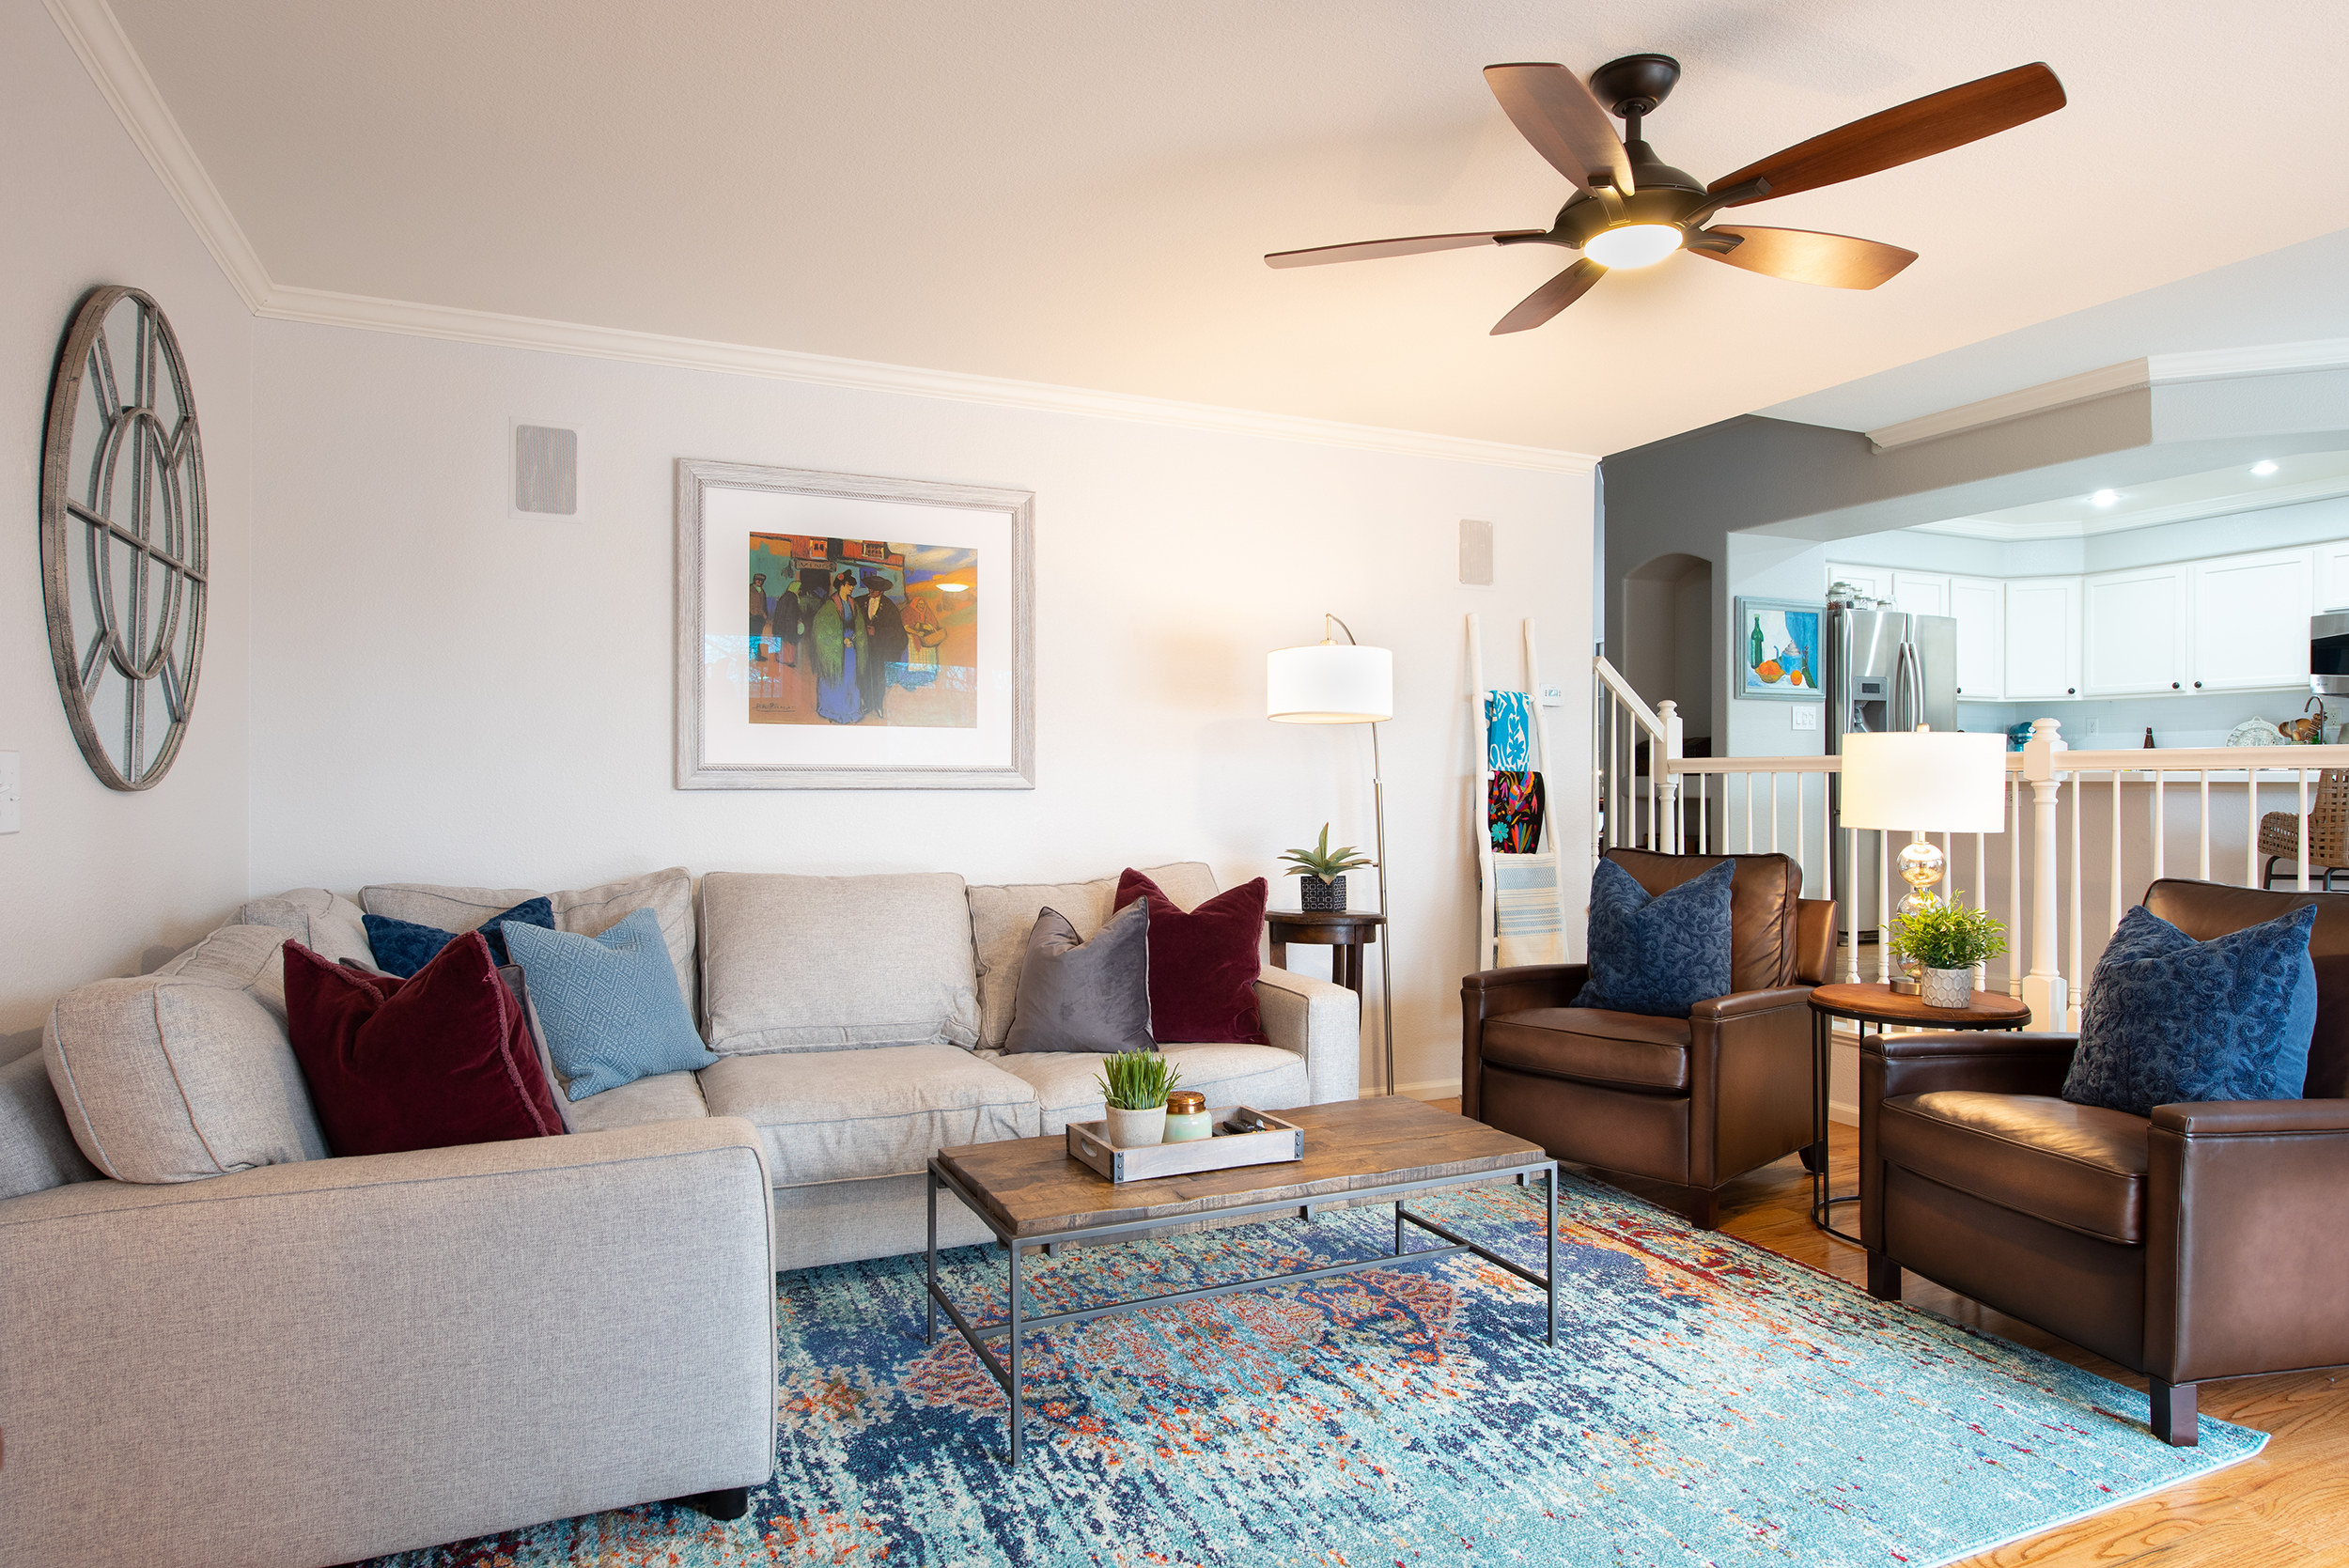 Living Room with Color